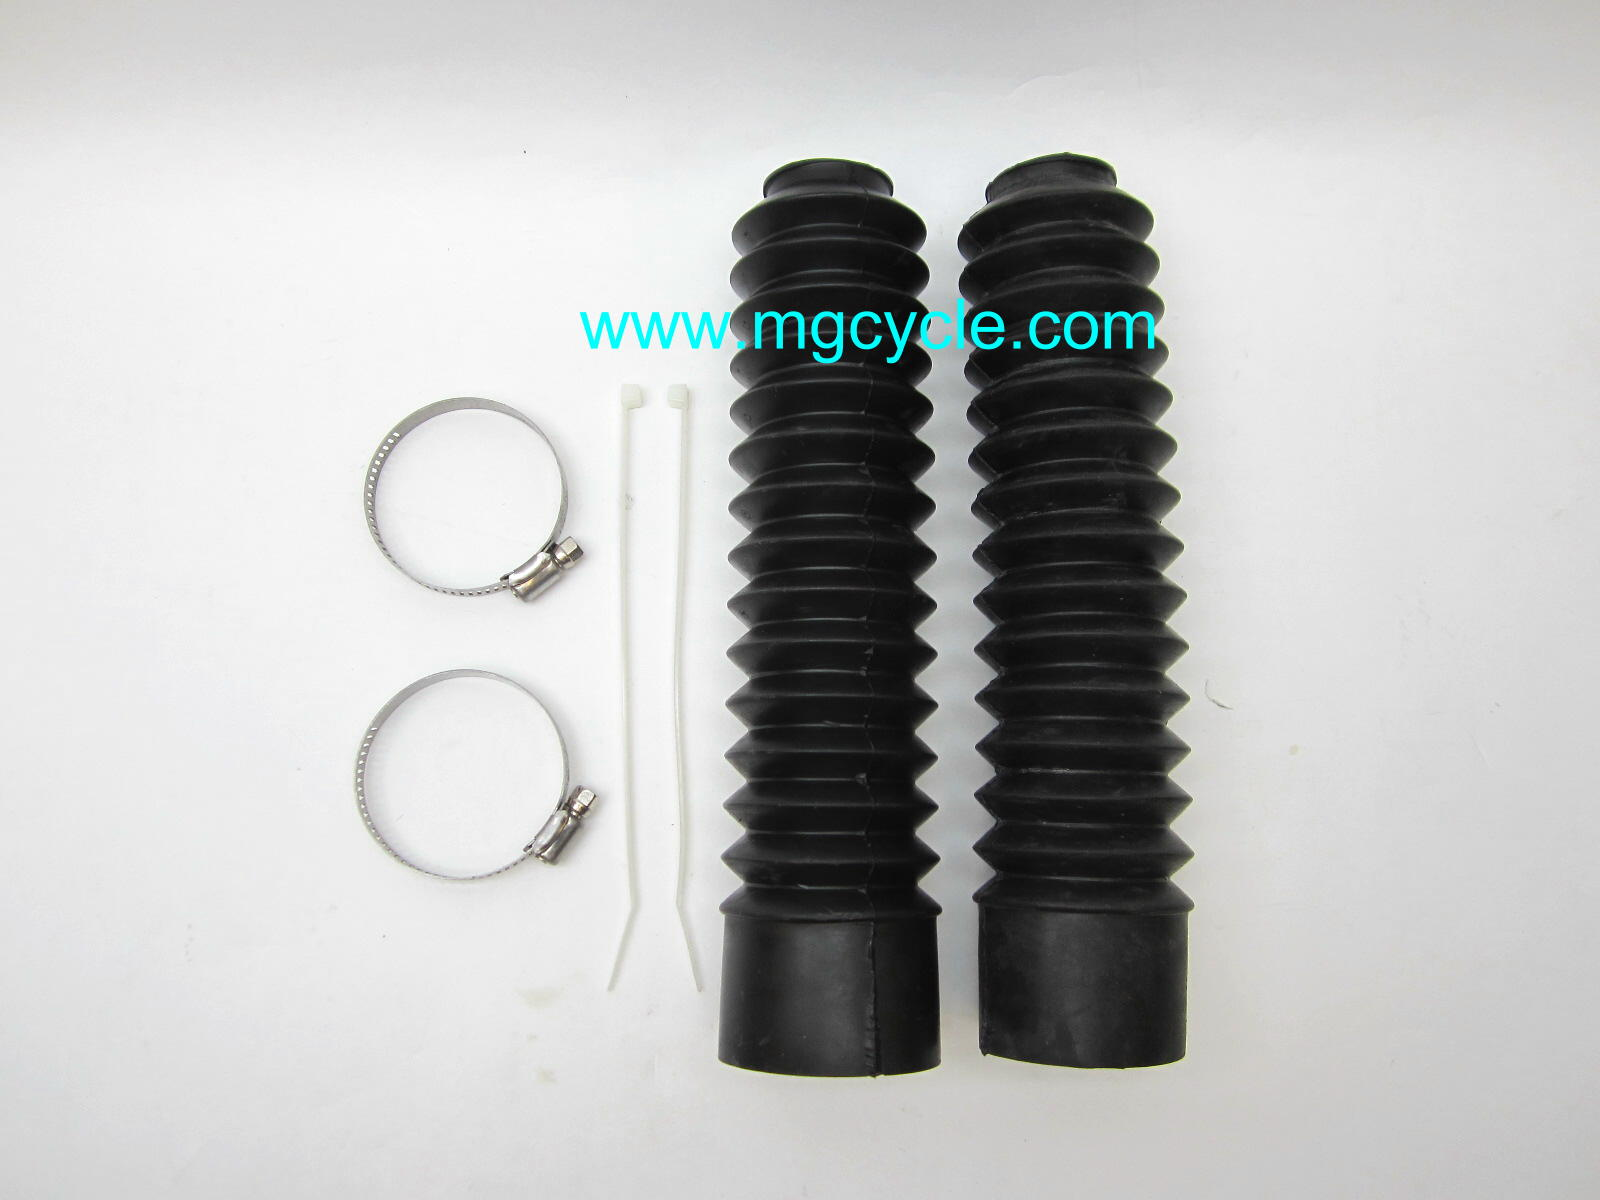 fork boot kit, fork gaiters for 32-38mm fork tubes